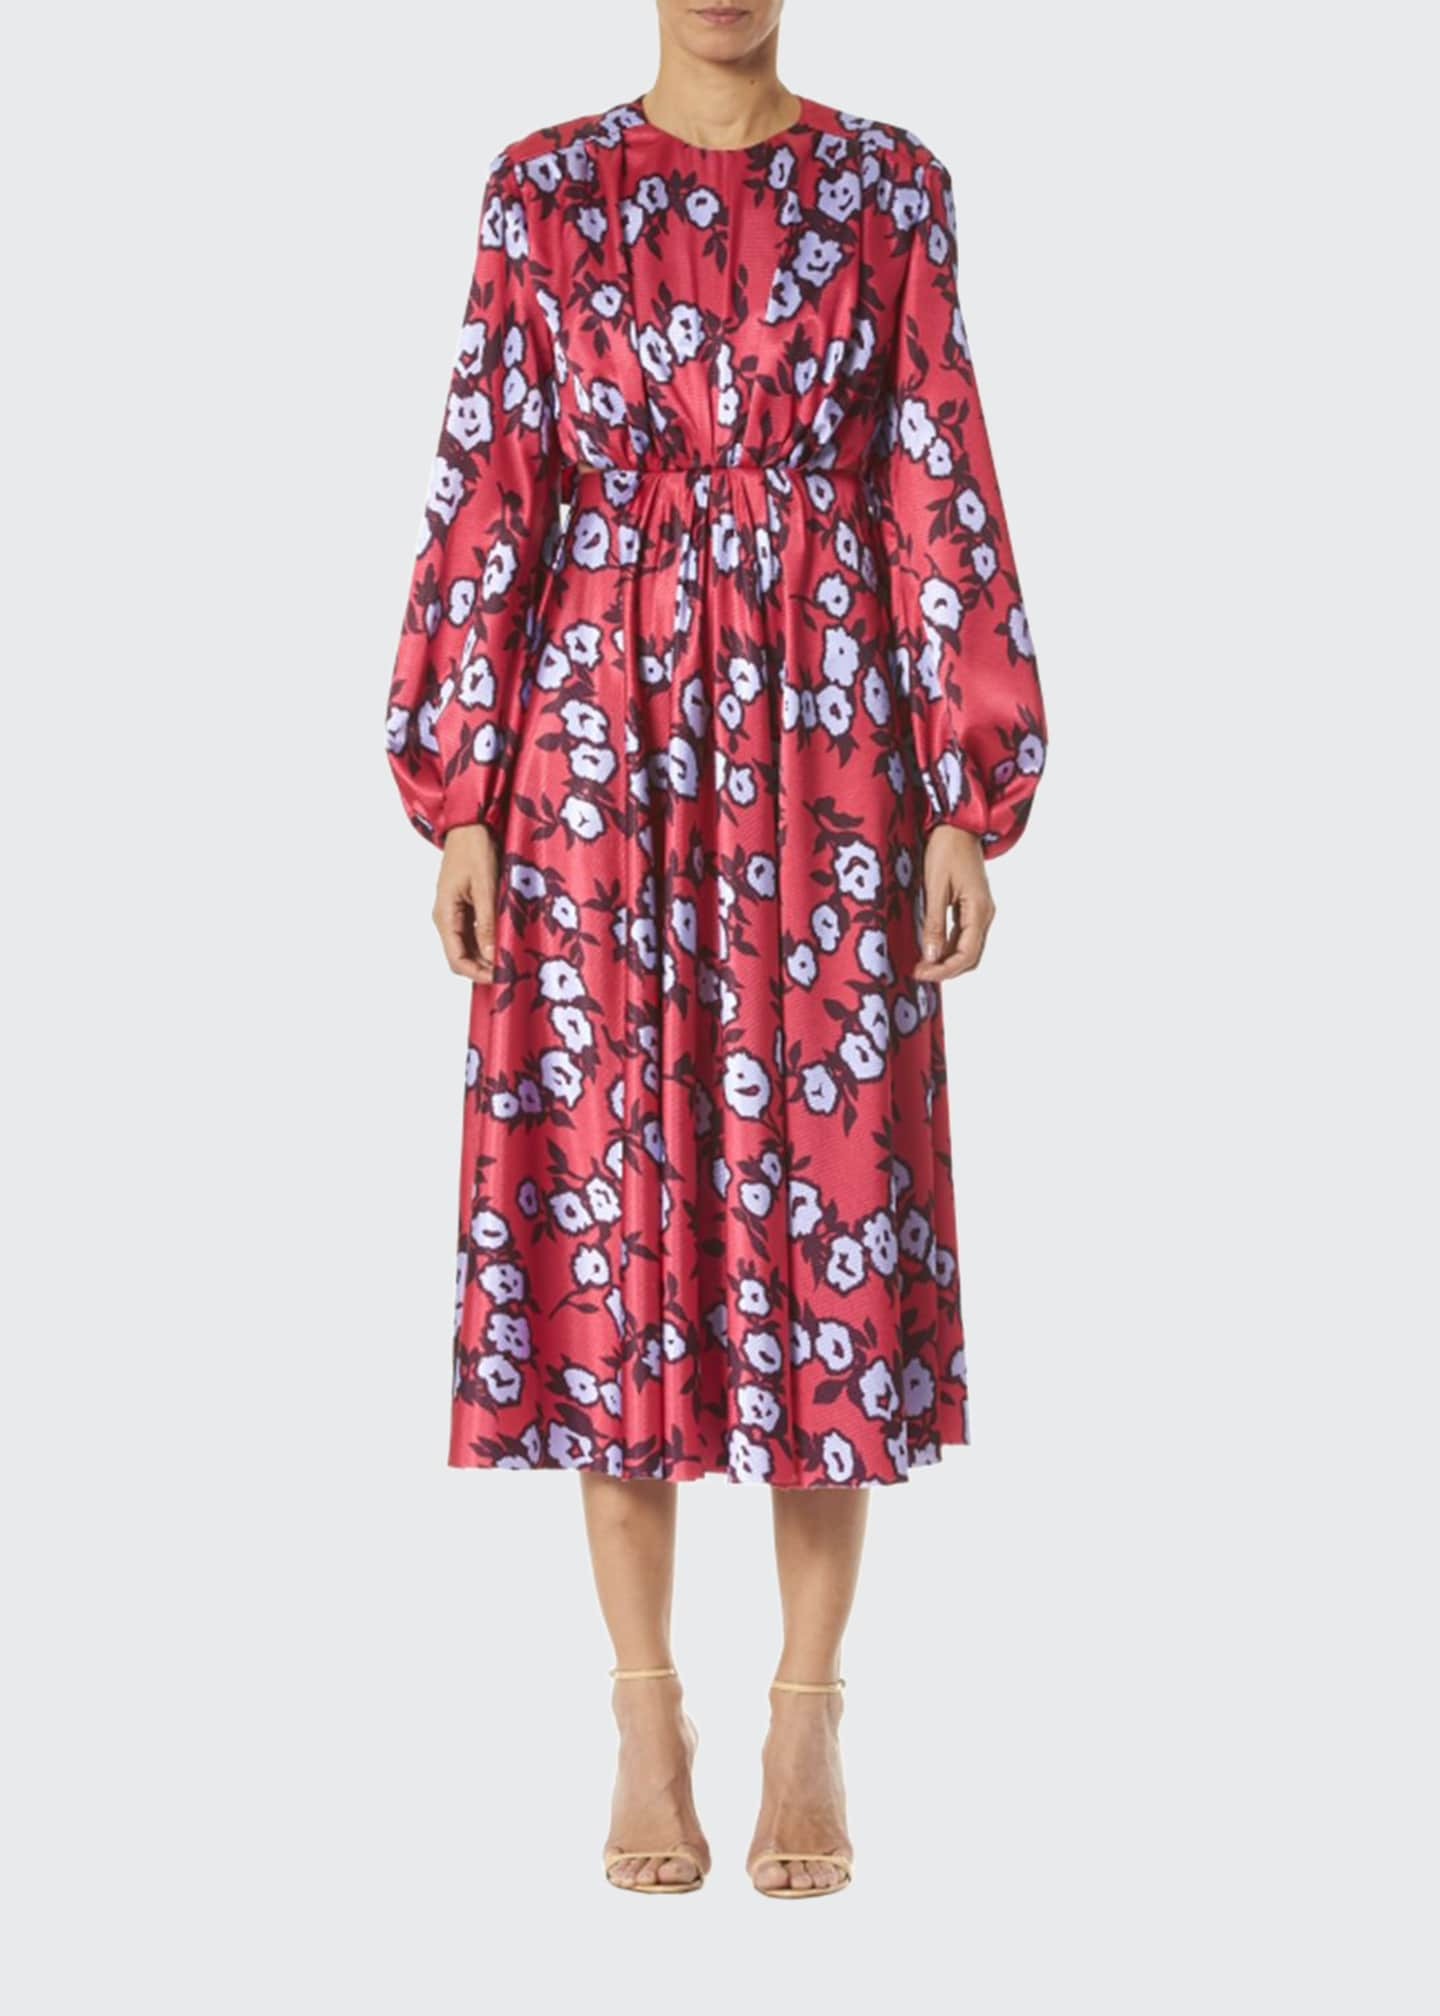 Carolina Herrera Floral-Print Long-Sleeve Gathered Dress